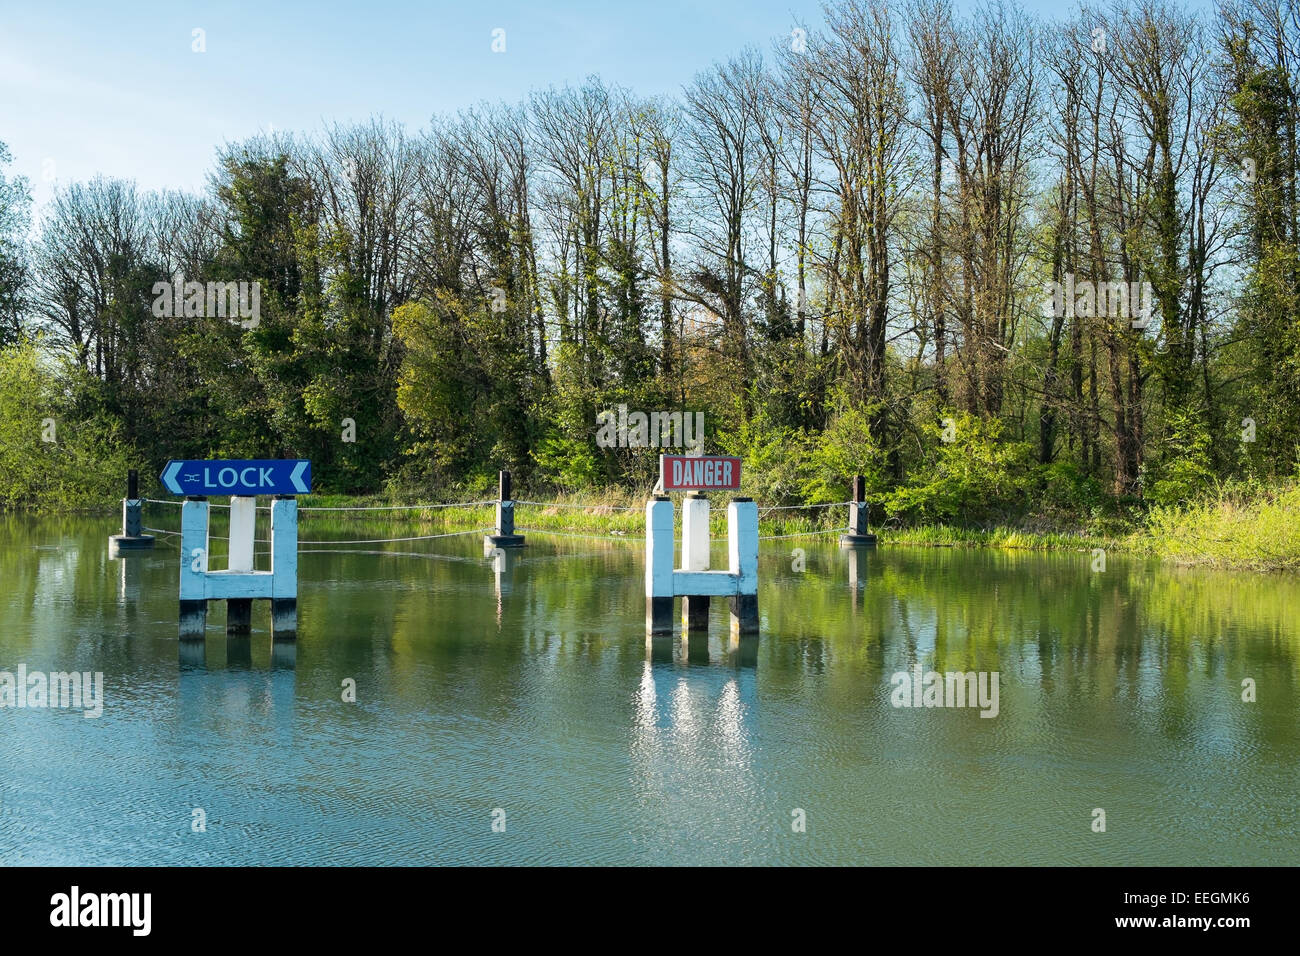 Direction signs for boats to the lock on the River Thames at Abingdon, Oxfordshire. Stock Photo